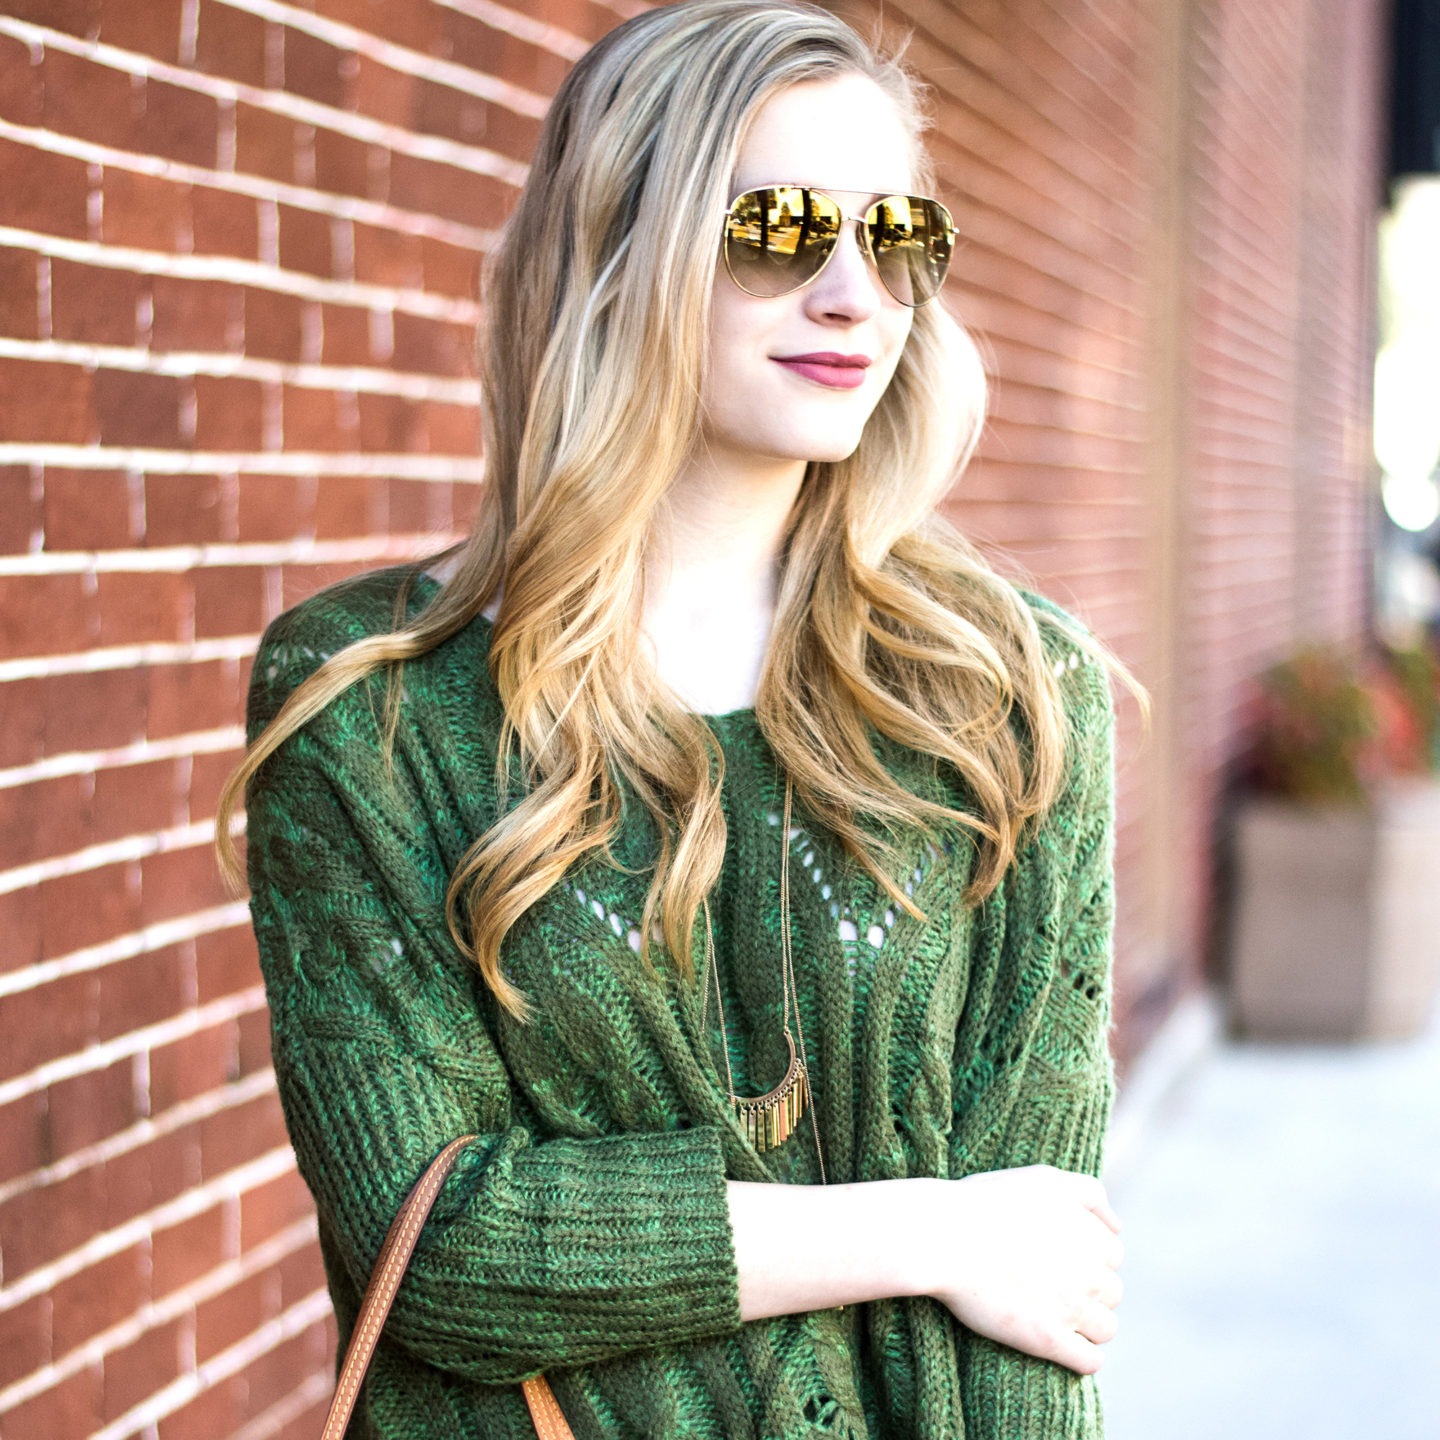 Chunky Knit Sweater in the Cool Florida Weather